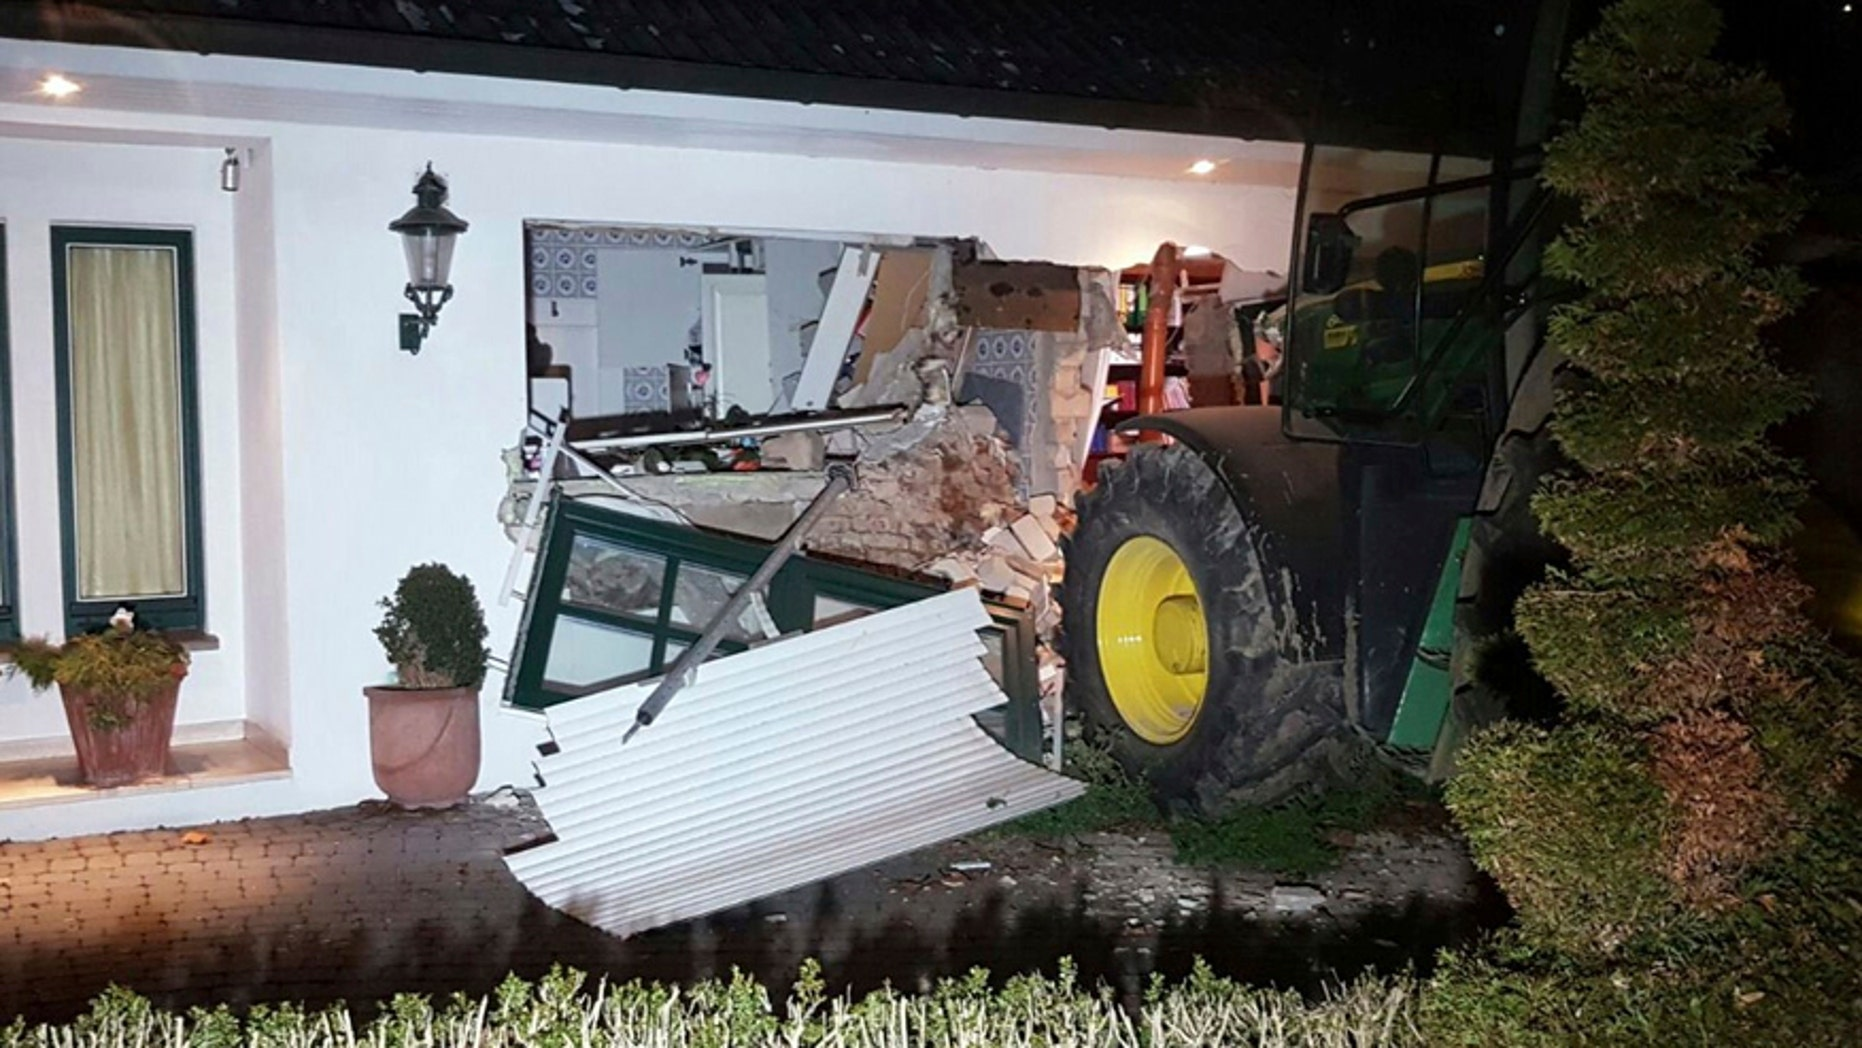 A tractor stands in front of a damaged house after it broke through the wall in Buende, north-western Germany, Thursday, Jan. 26, 2017. Unknown intruders steered the tractor into the house and broke through the wall in order to steal a safe. The residents were not injured. (Nord-West-Media TV/dpa via AP)